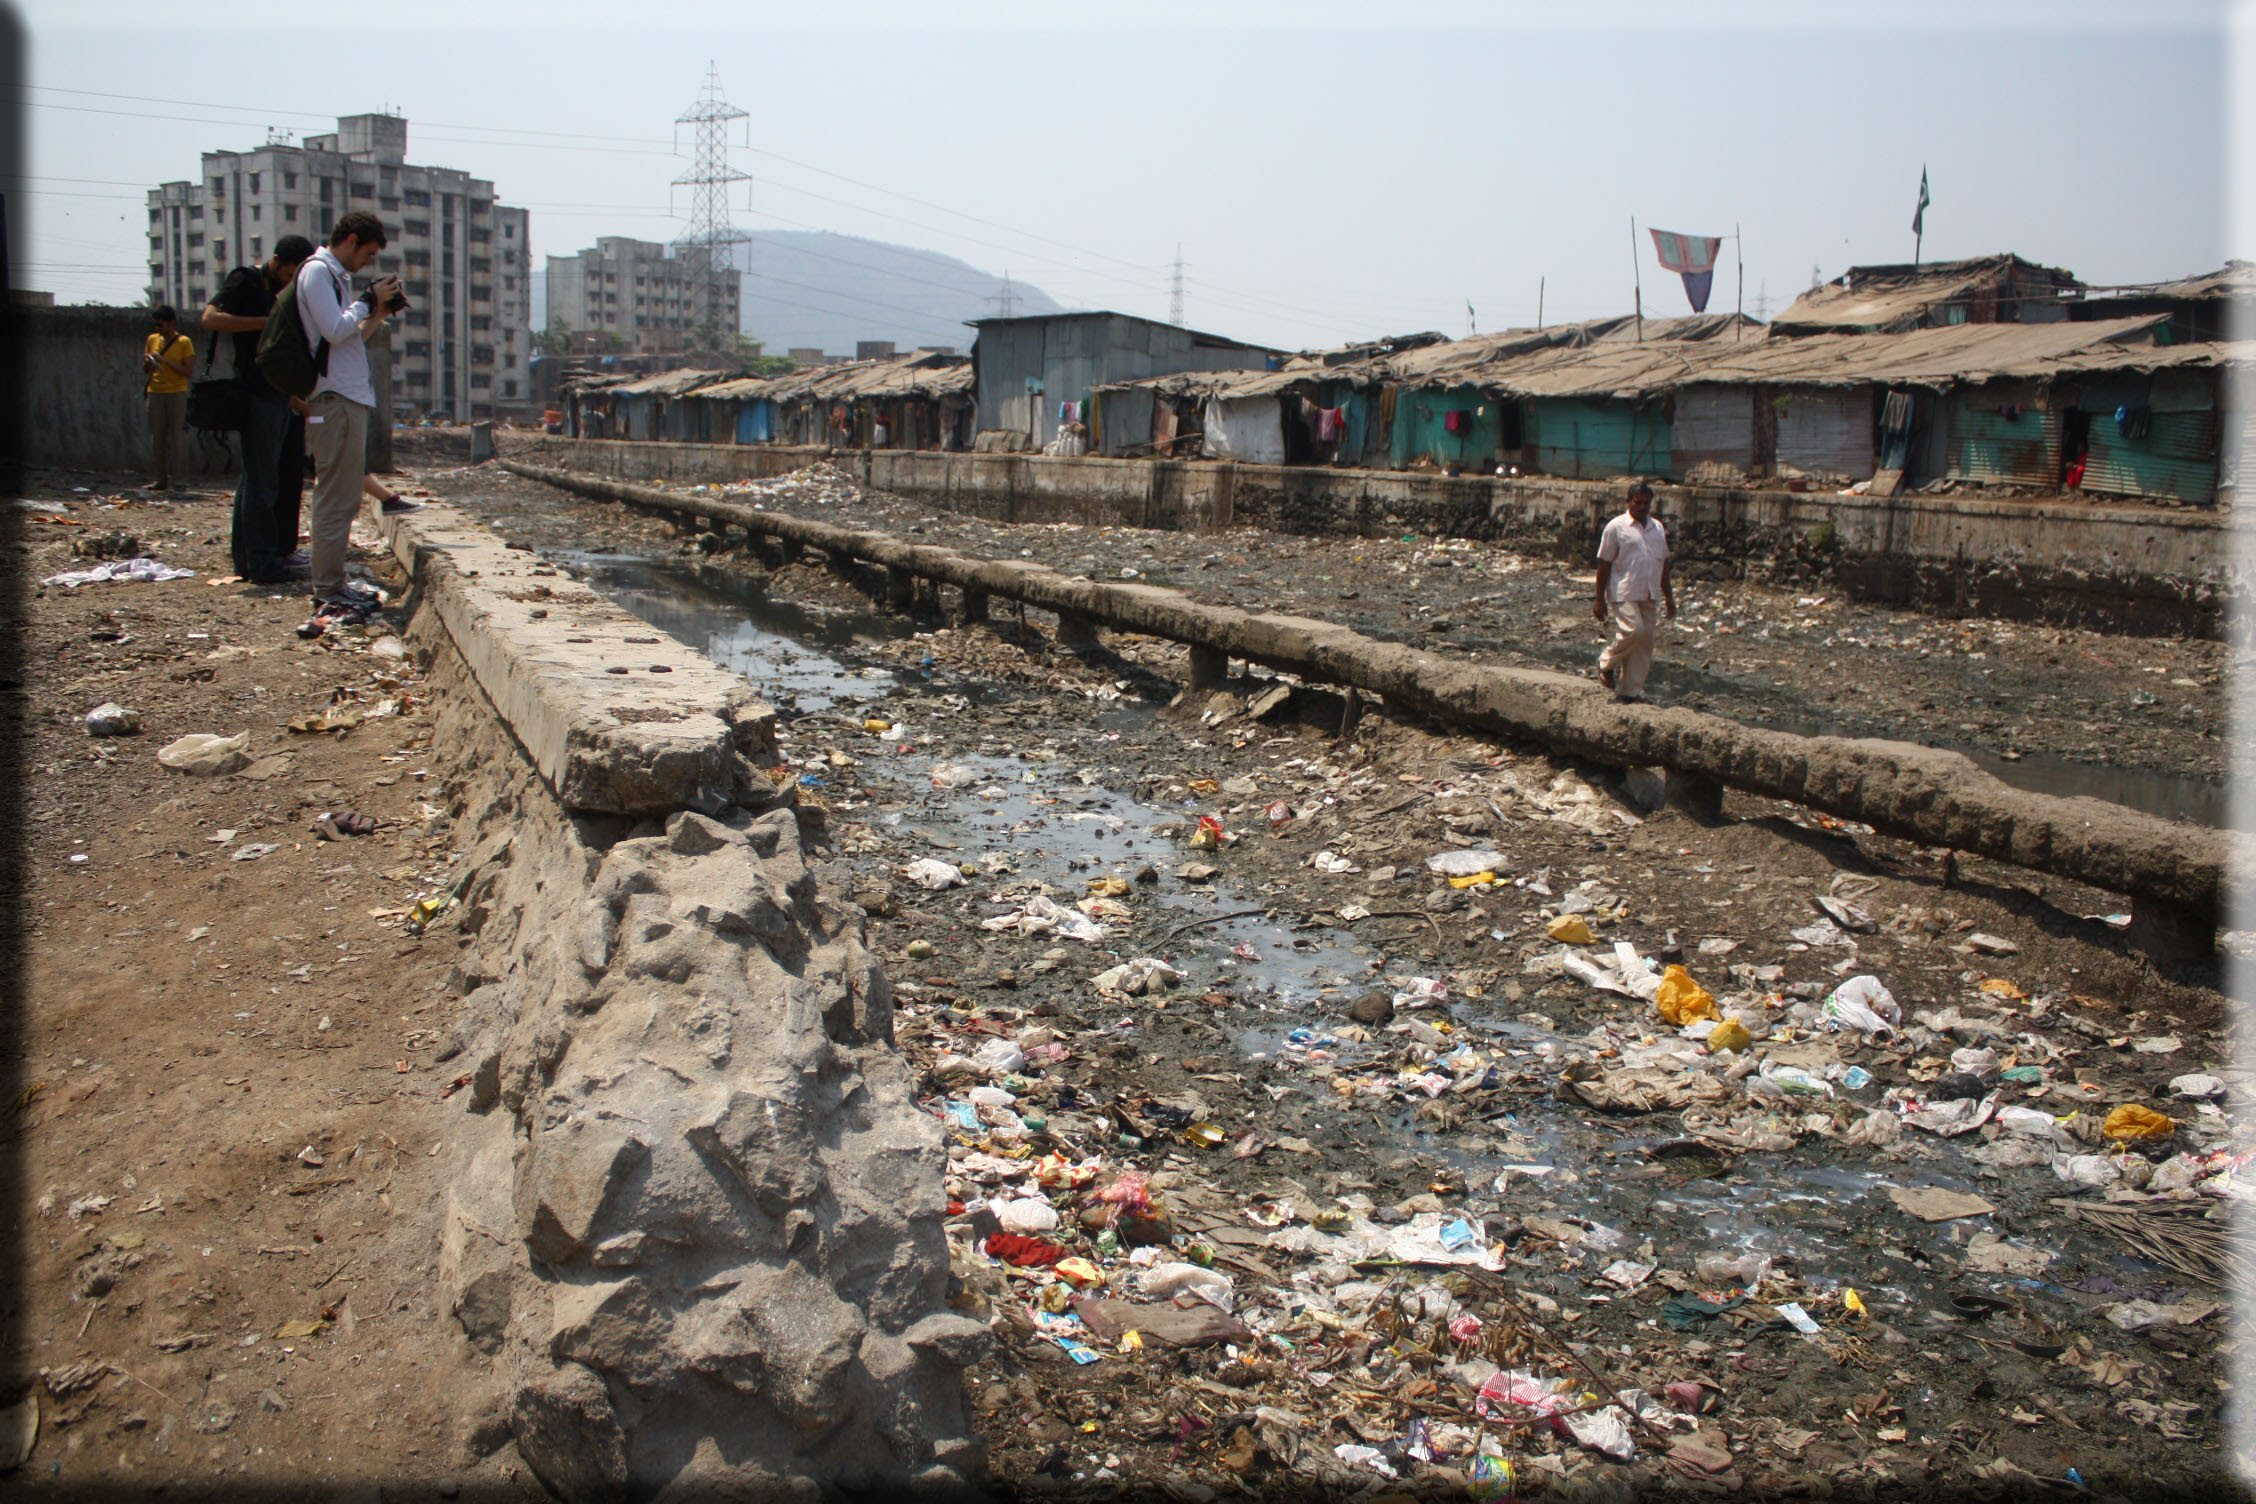 Health and Sanitation - Living Conditions in Indian Slums